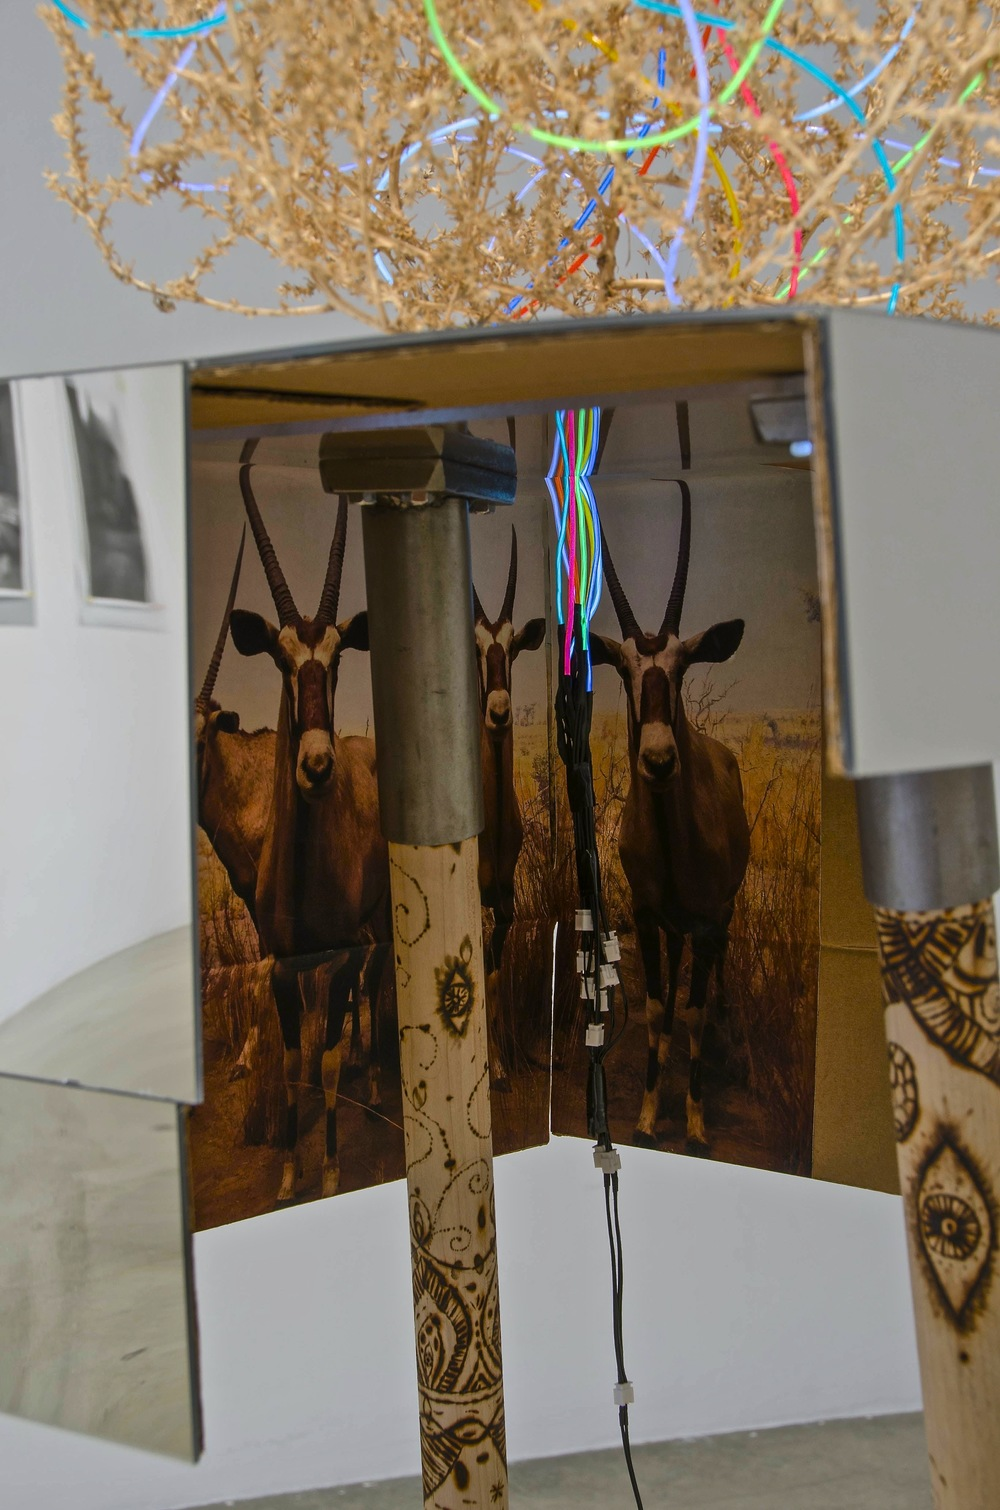 close-up, wood (wood burned), steel, cardboard, photograph, mirrored plexiglas, tumbleweed, EL wire